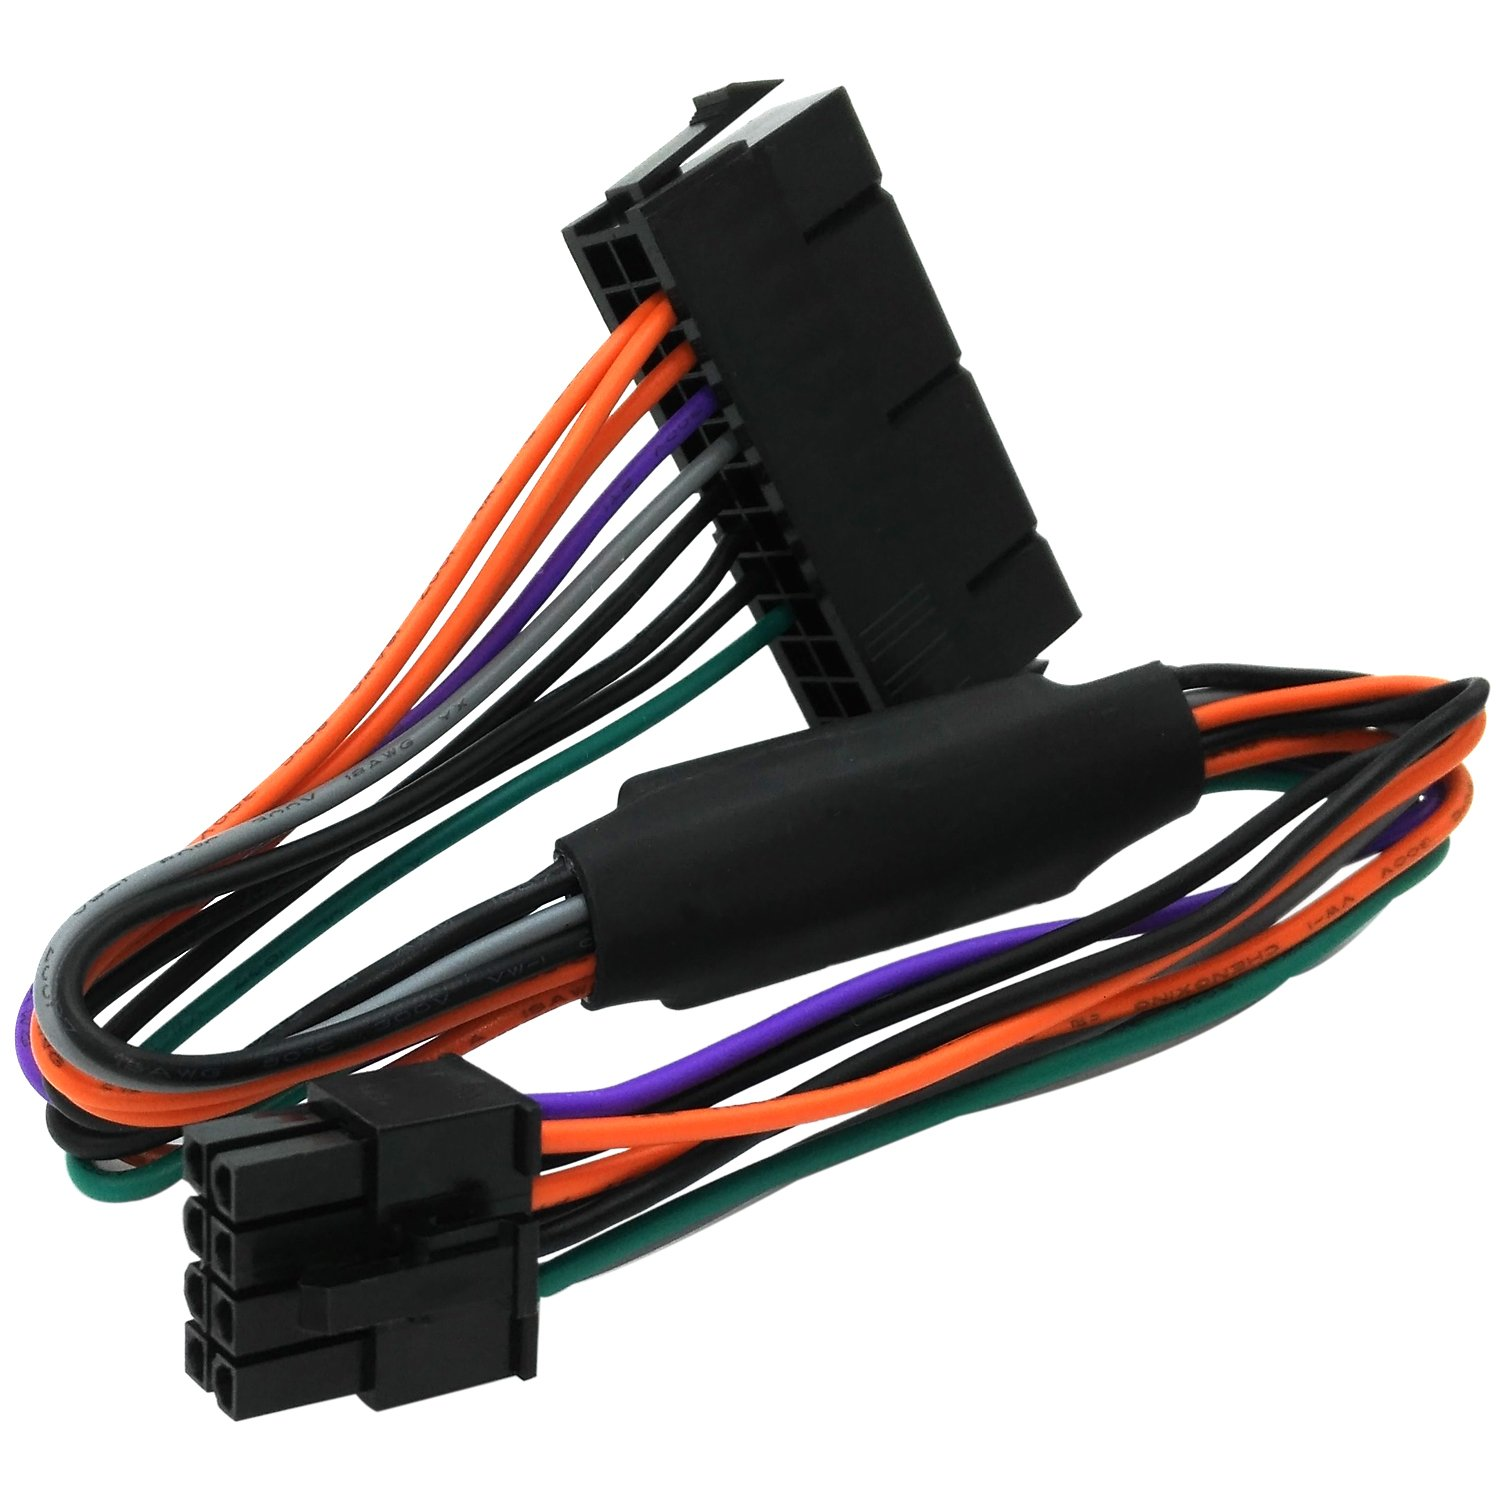 Serial Cables - Page 4 - Super Savings! Save up to 40% | Wise Warthog